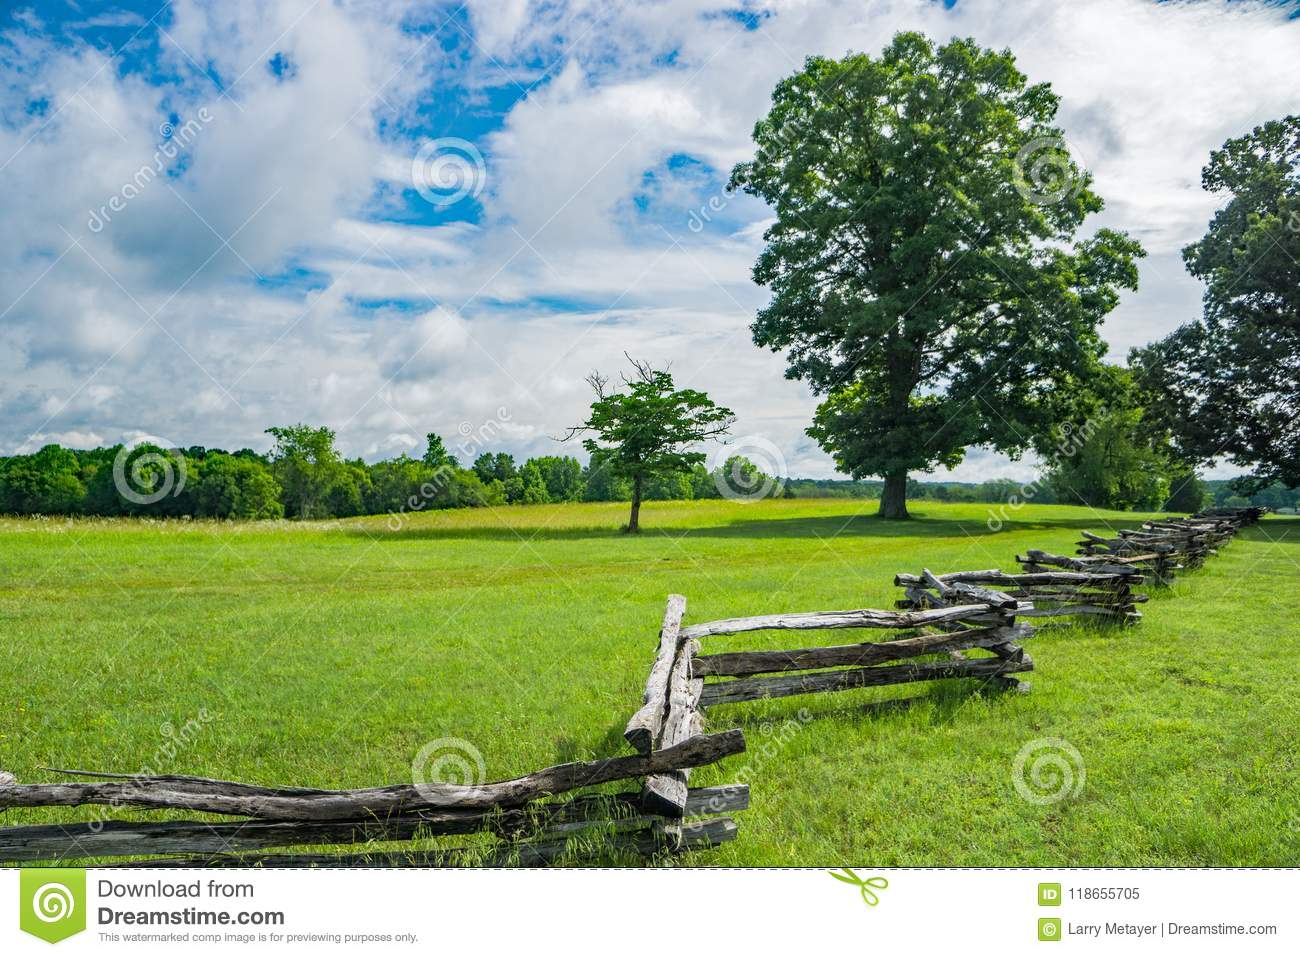 Split Rail Fence in a Field on a Beautiful Spring Day